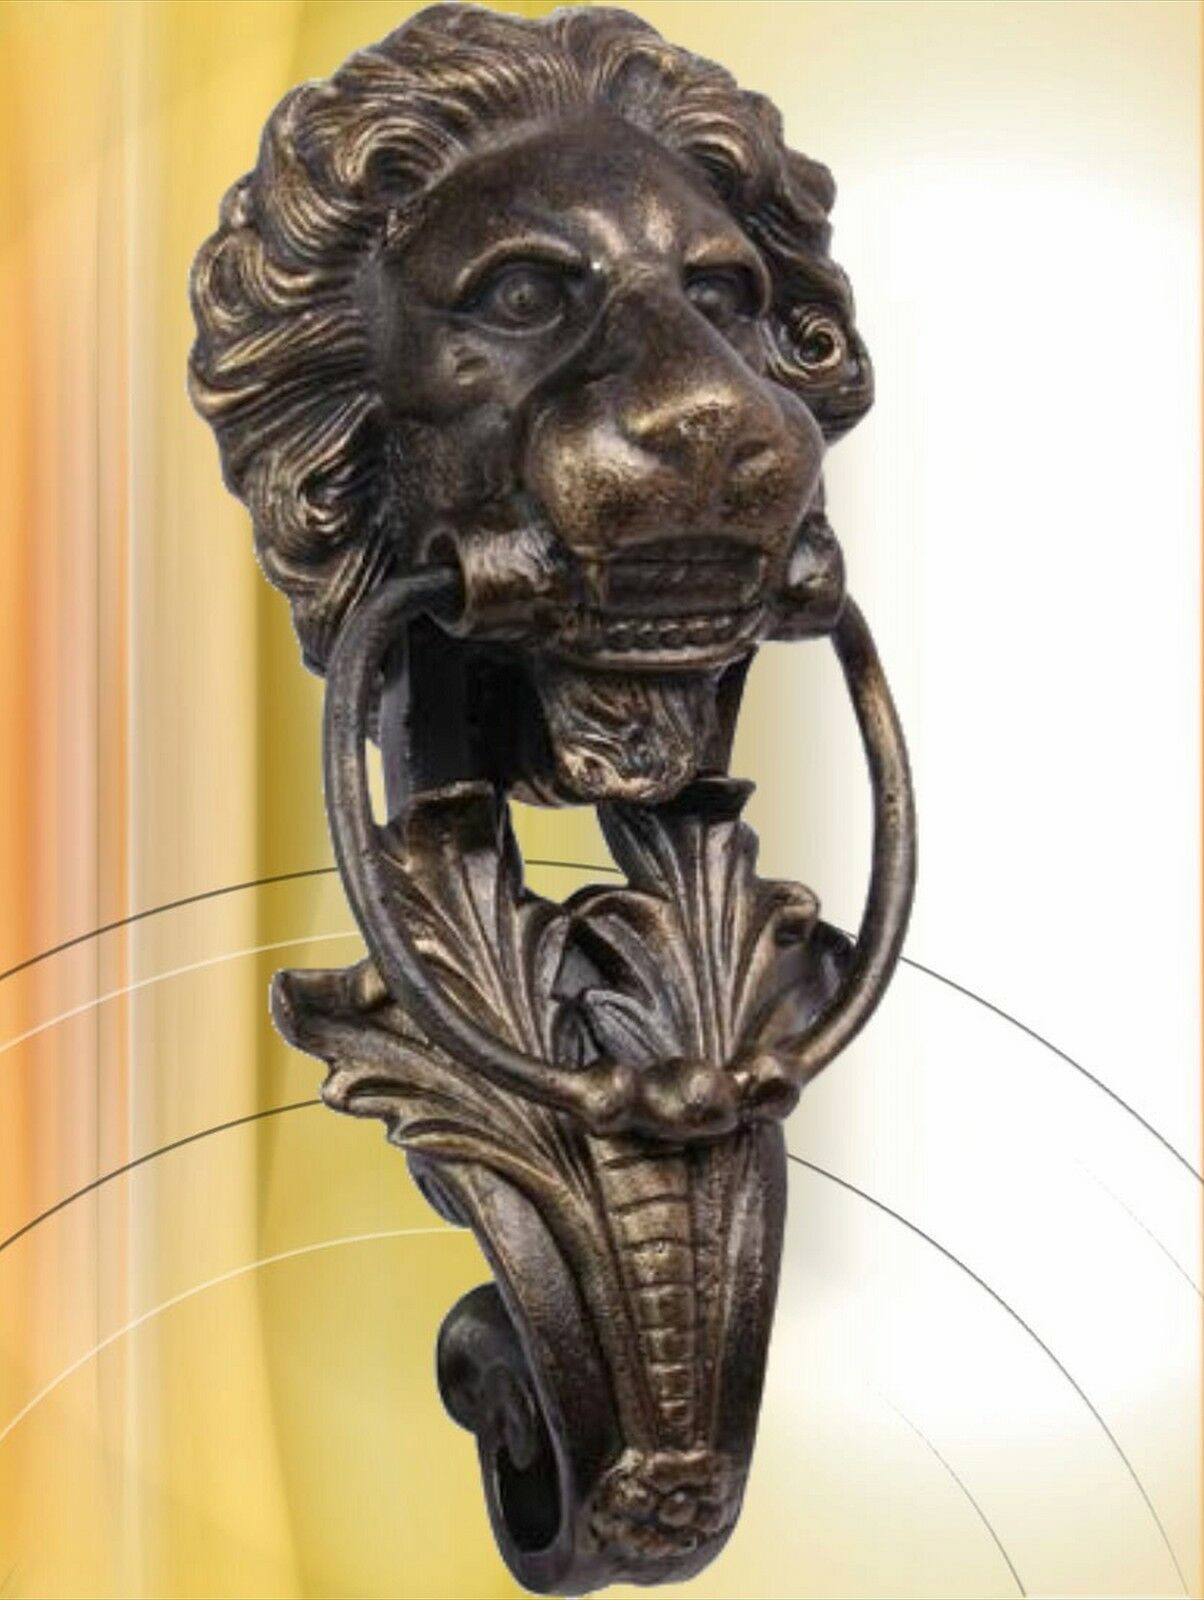 lion head l wenkopf doorknocker h 41 cm l wen t rklopfer f r richtige t ren eur 59 00. Black Bedroom Furniture Sets. Home Design Ideas